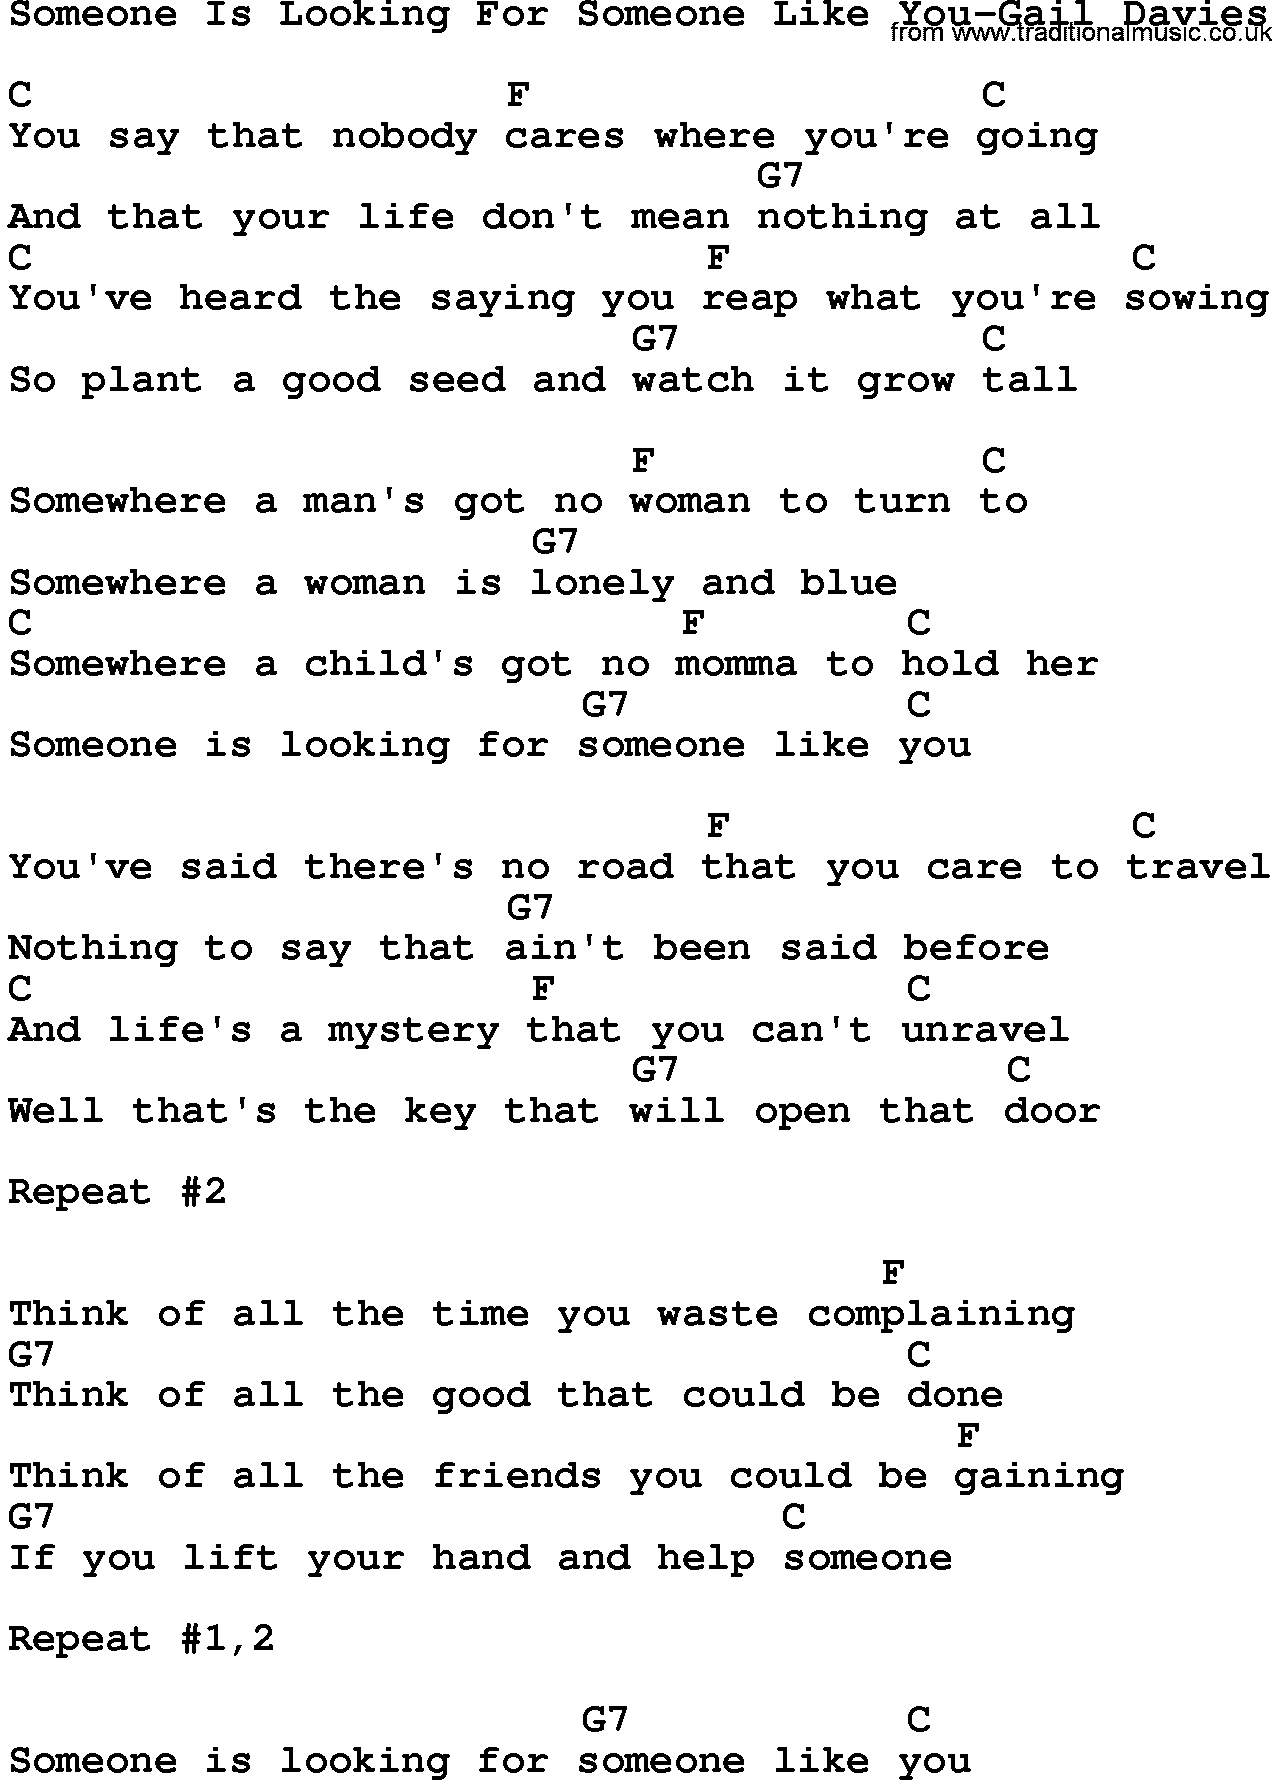 Someone Like You Chords Country Musicsomeone Is Looking For Someone Like You Gail Davies